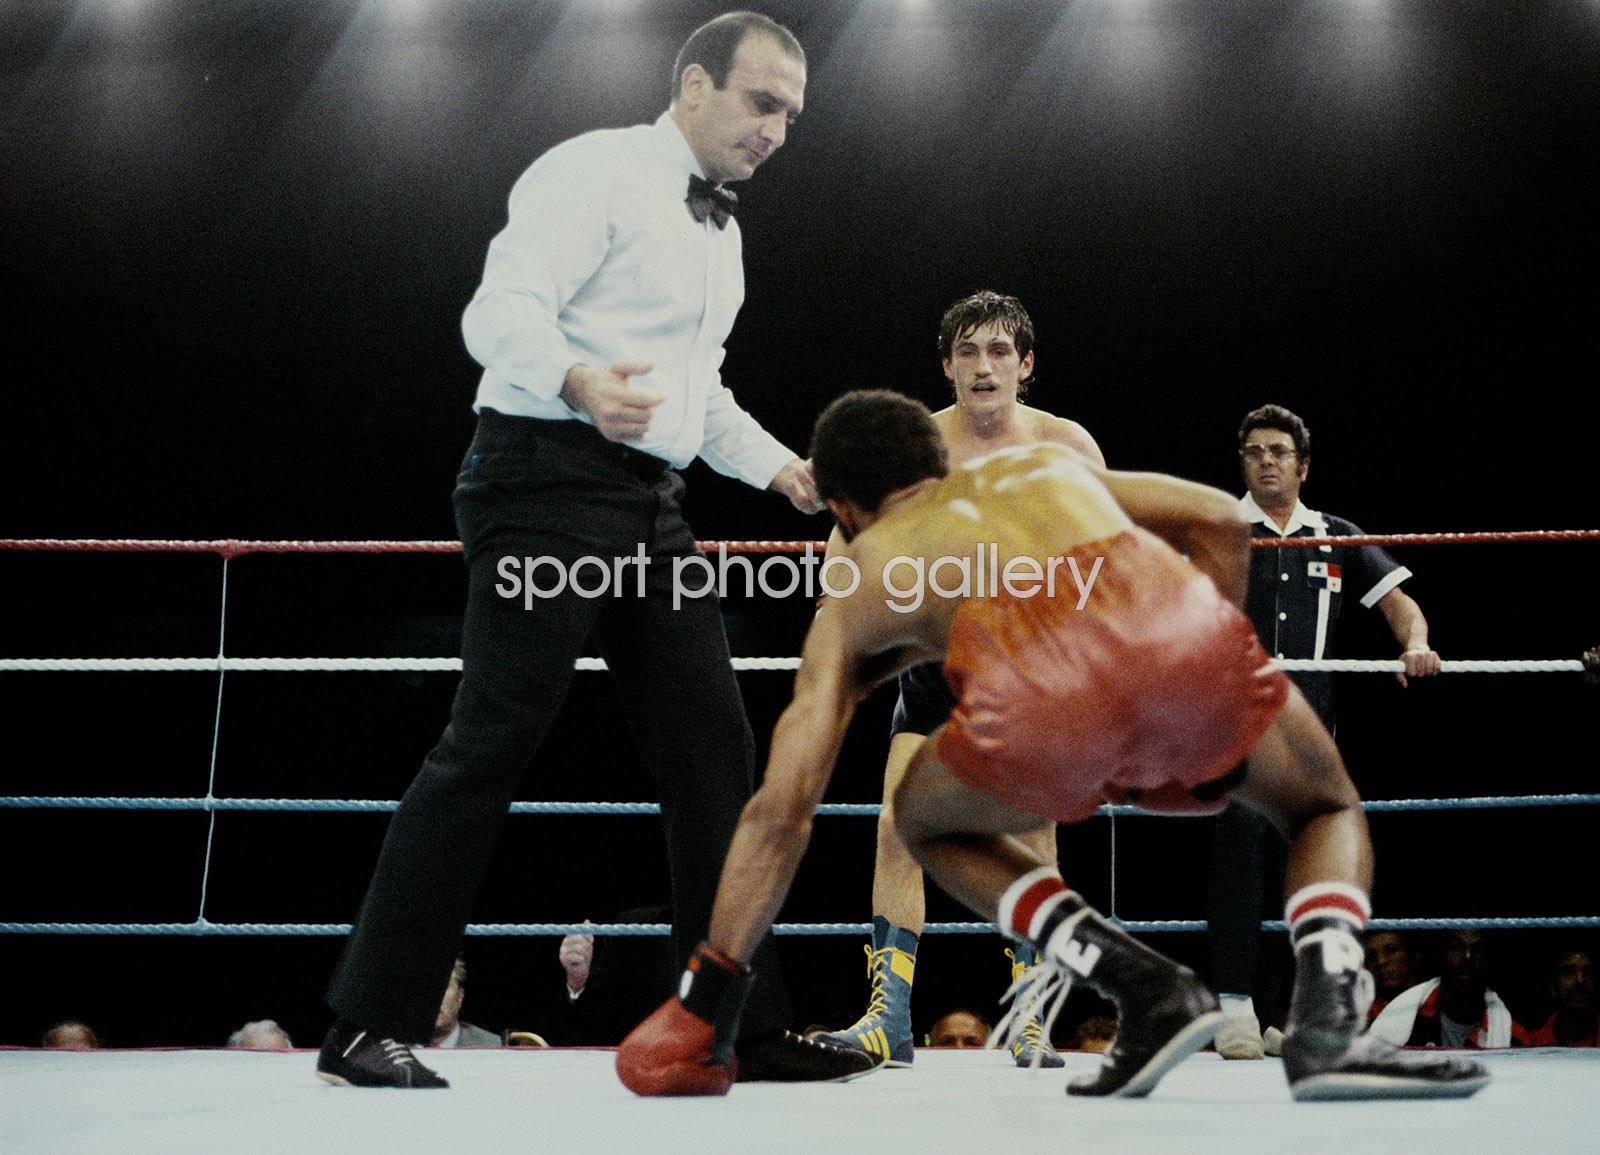 Barry McGuigan Northern Ireland knocks down Eusebio Pedroza London 1985